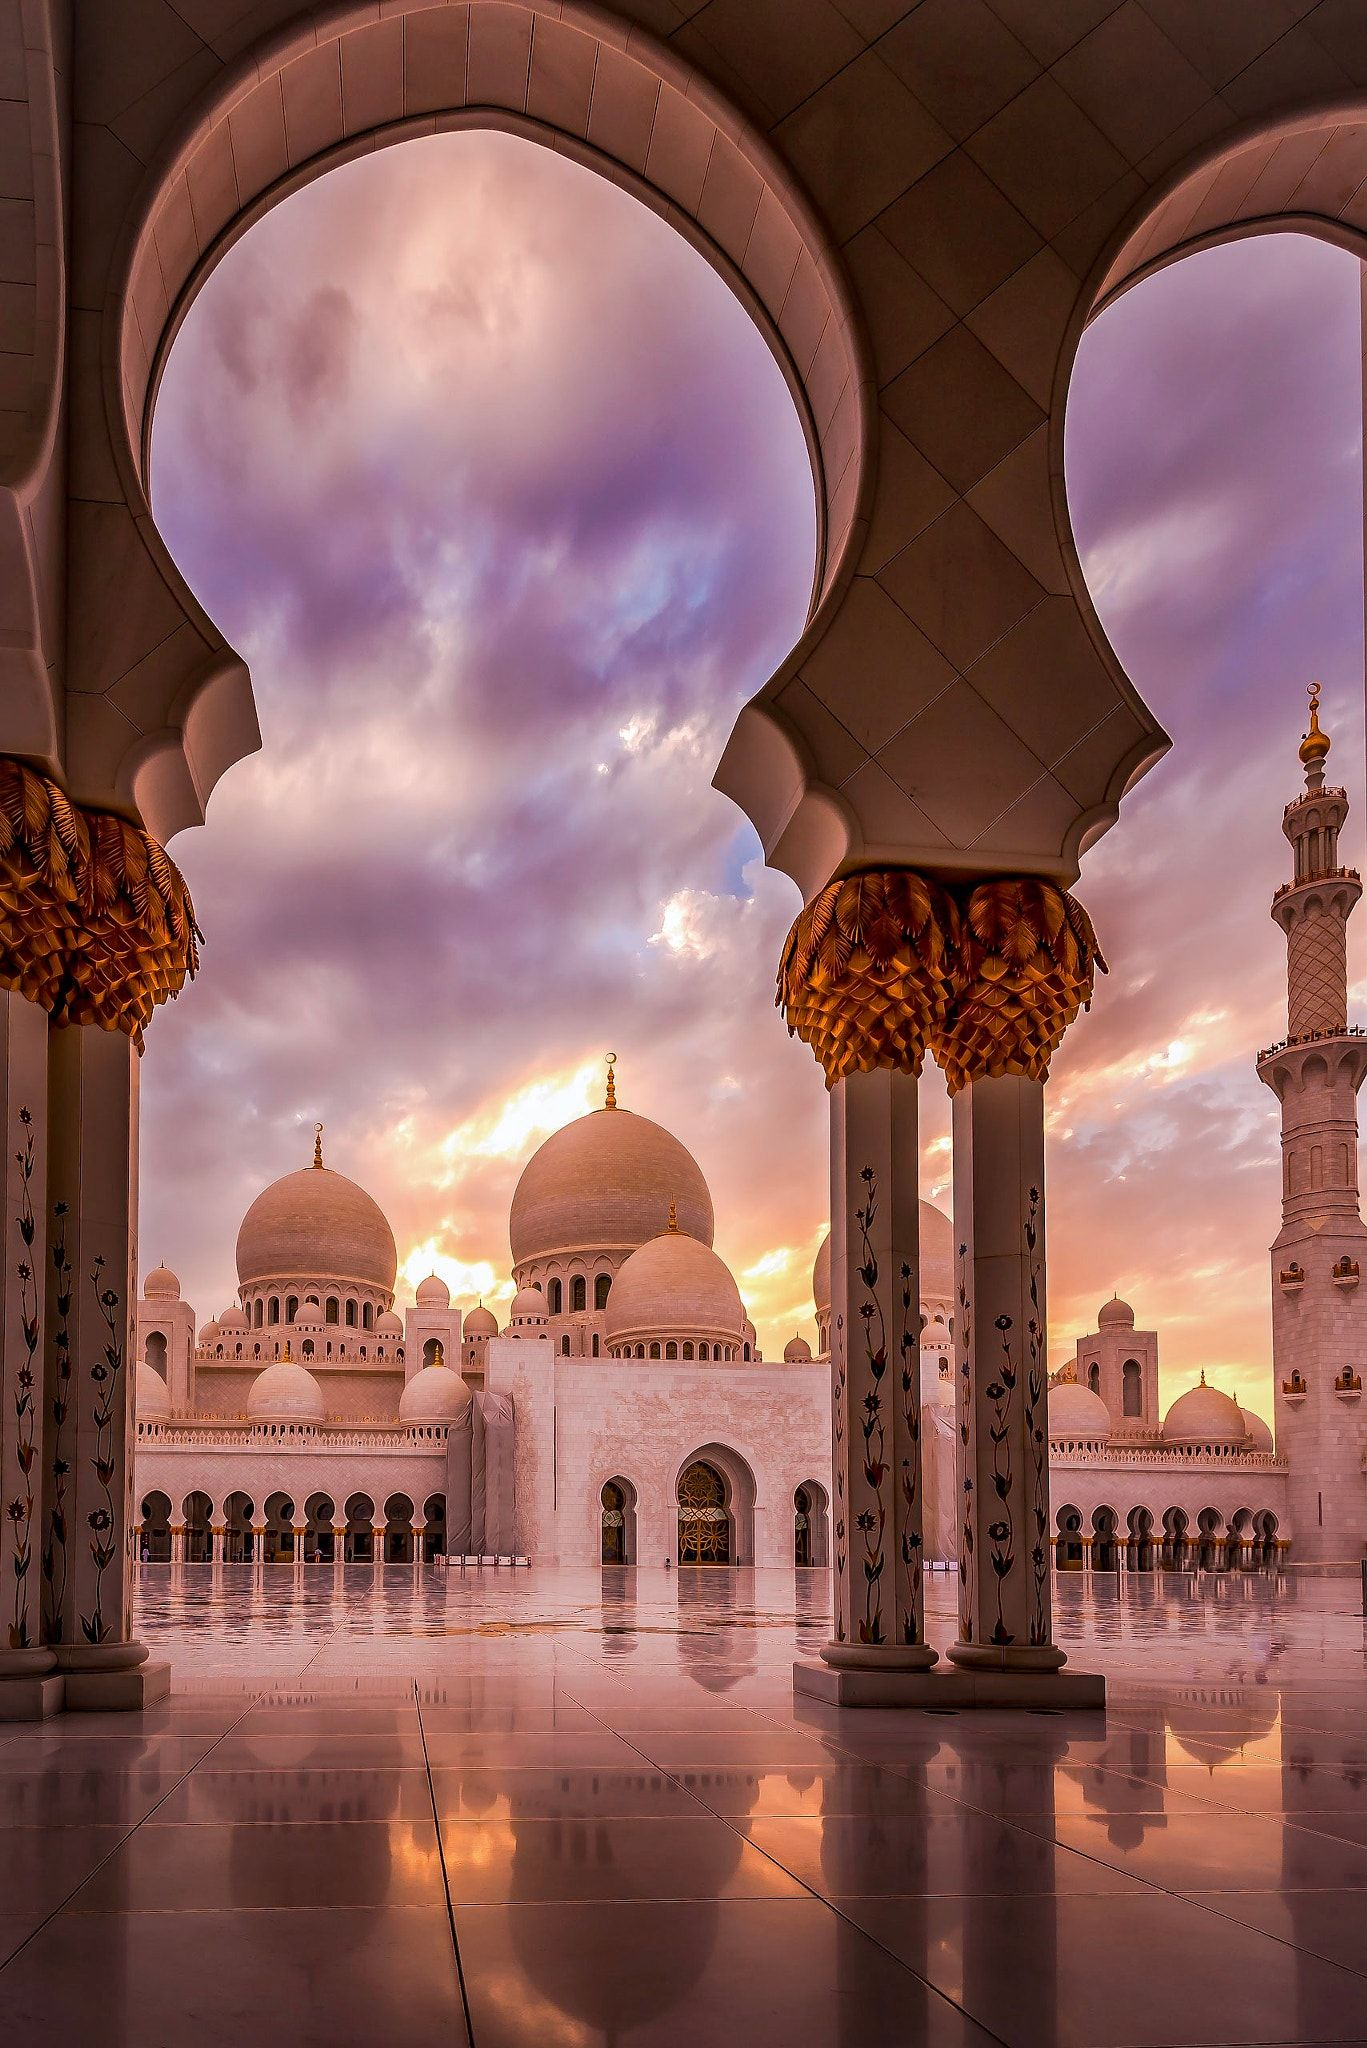 Sunset at the Mosque by julian john / 500px